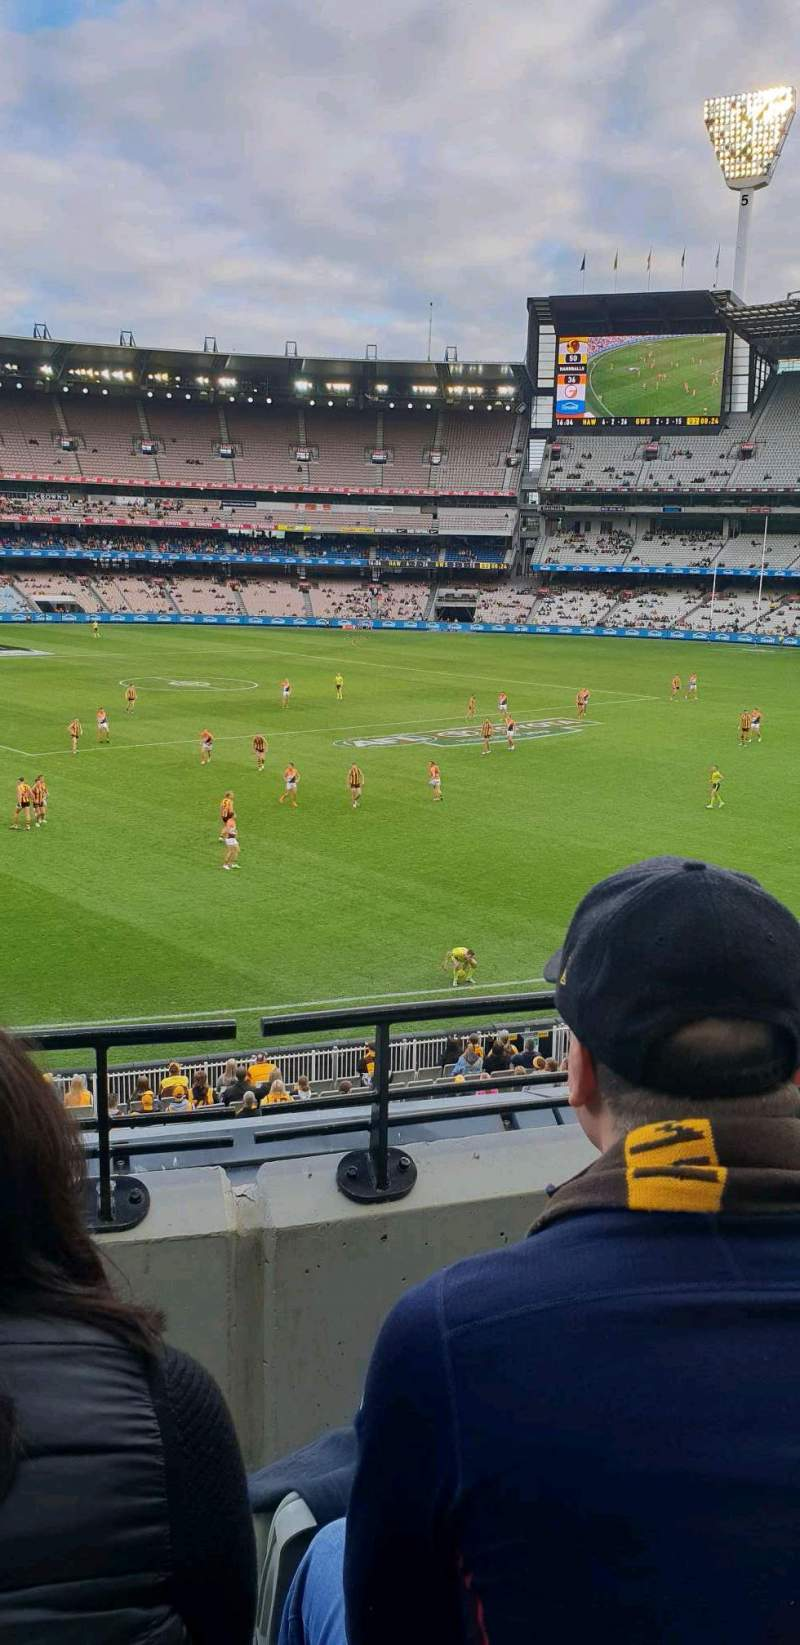 Seating view for Melbourne Cricket Ground Section n51 Row c Seat 22